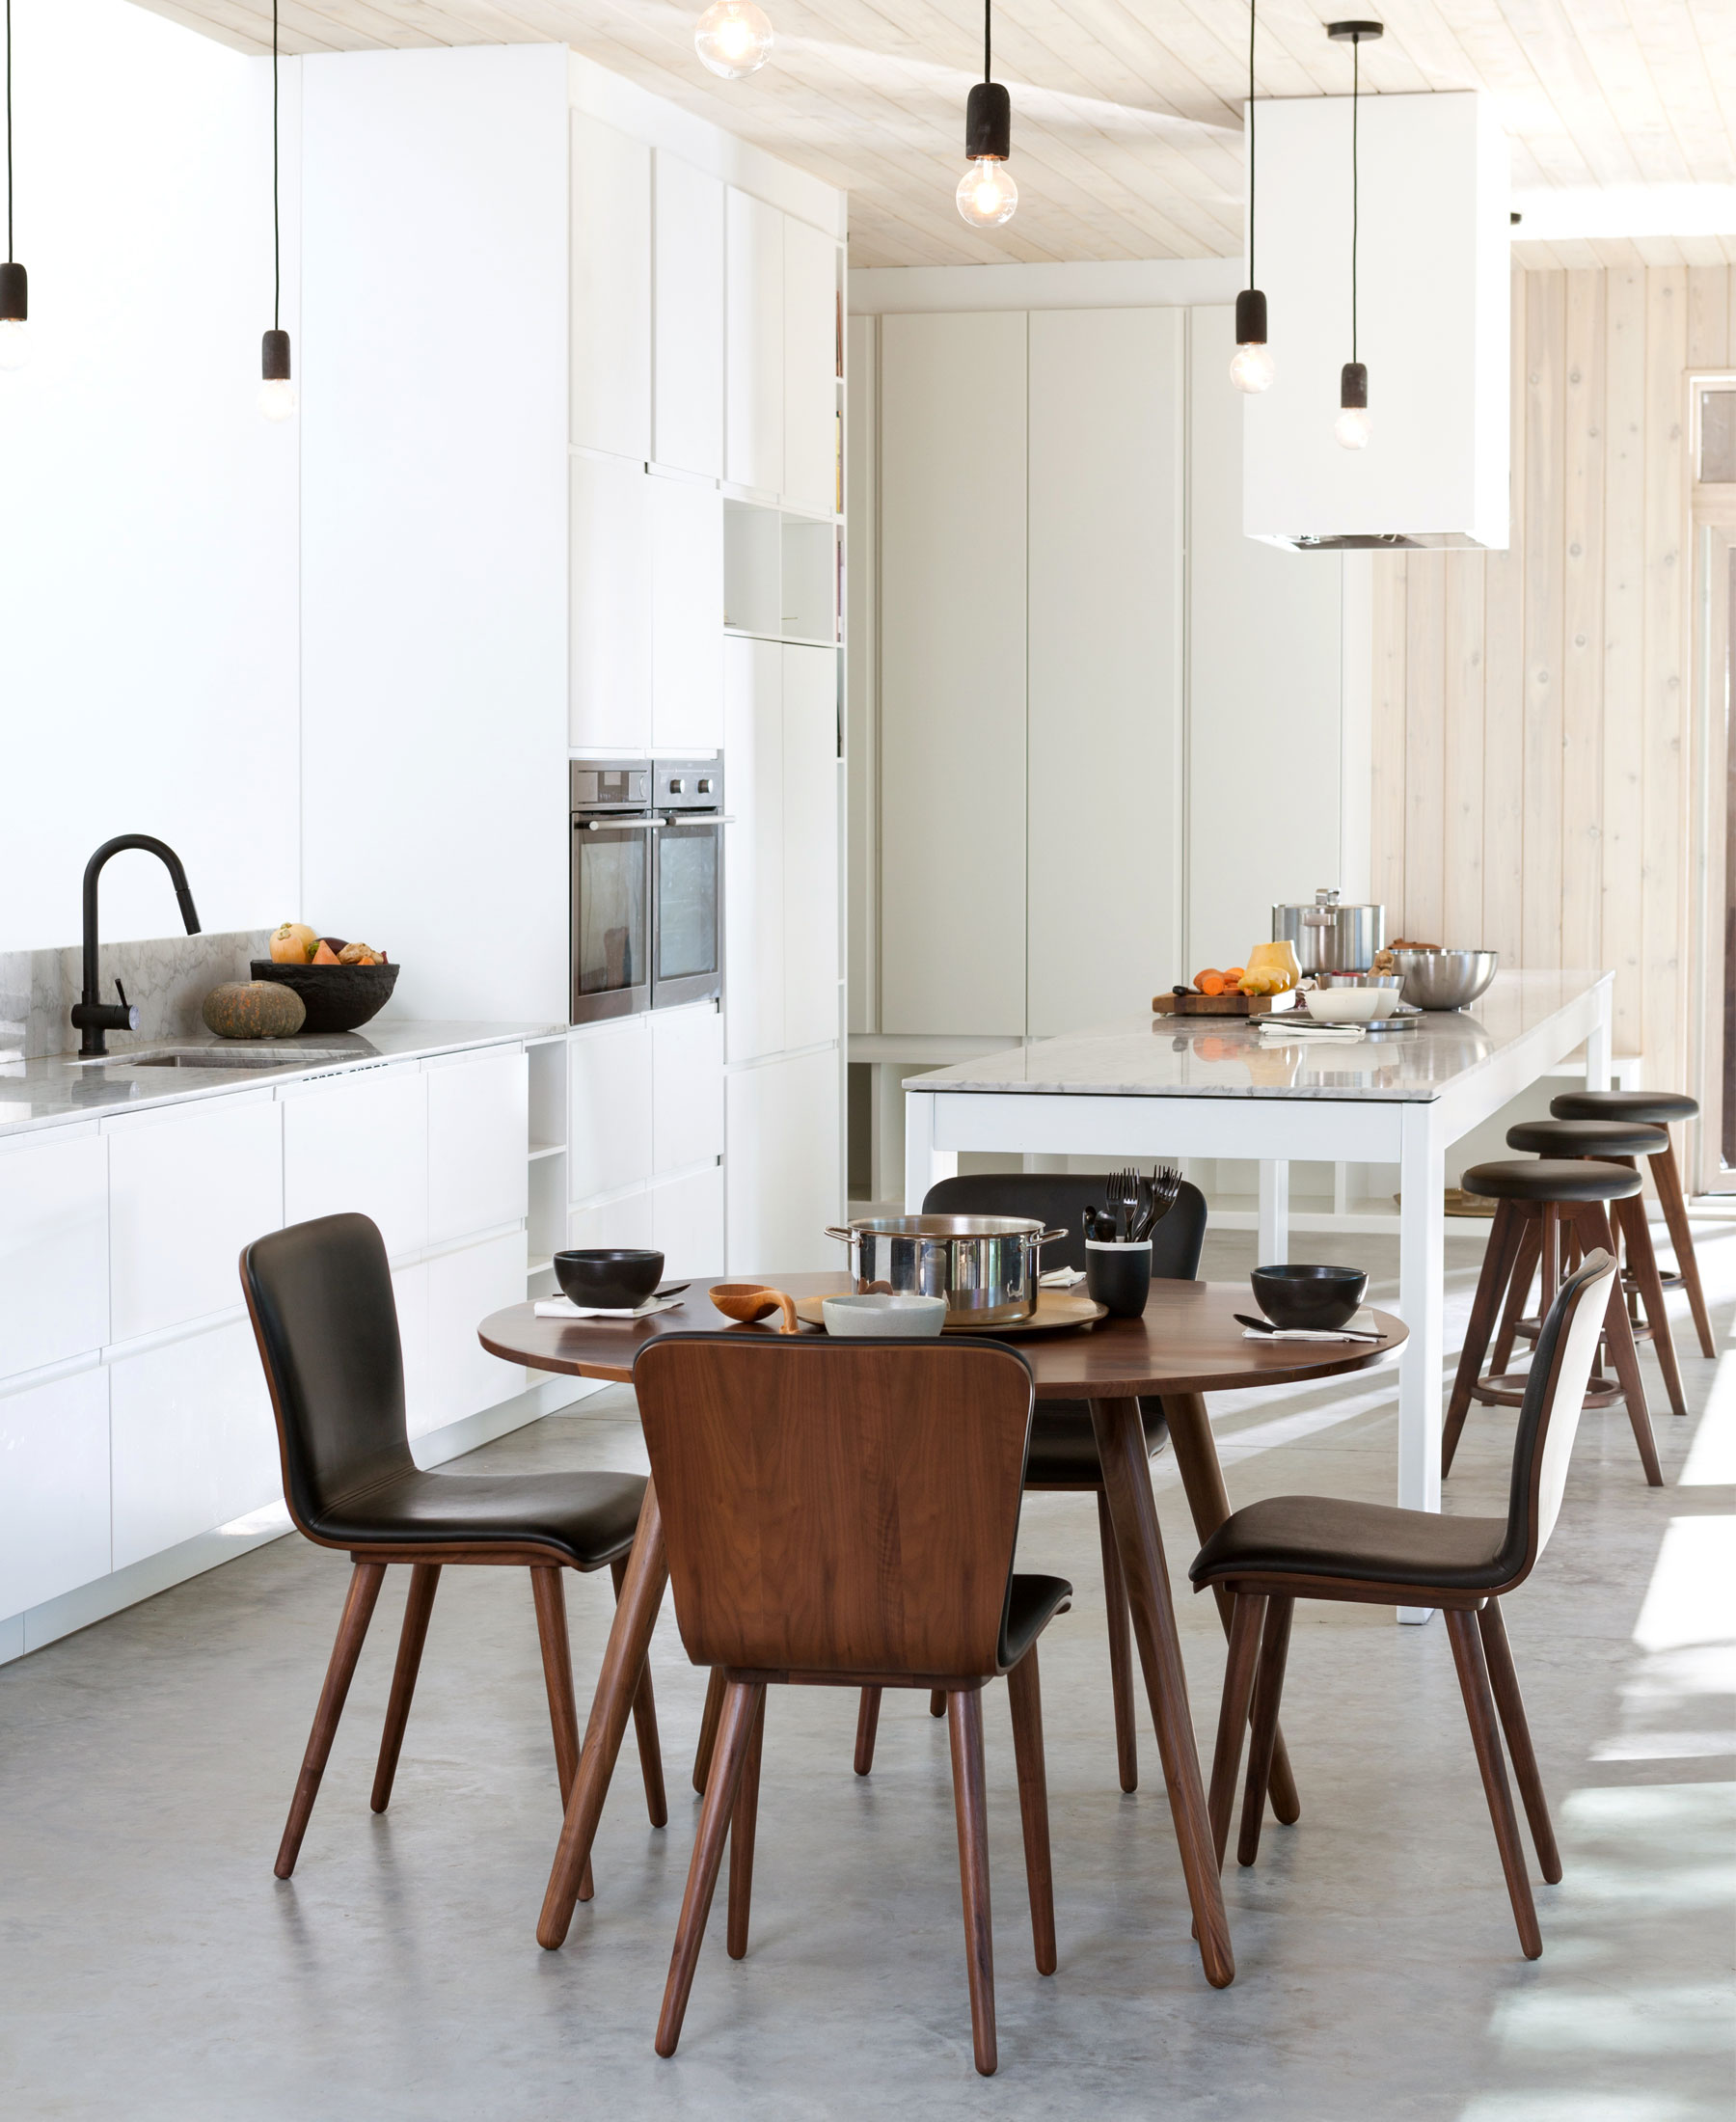 A modern Scandinavian-inspired open-concept kitchen and dining area.